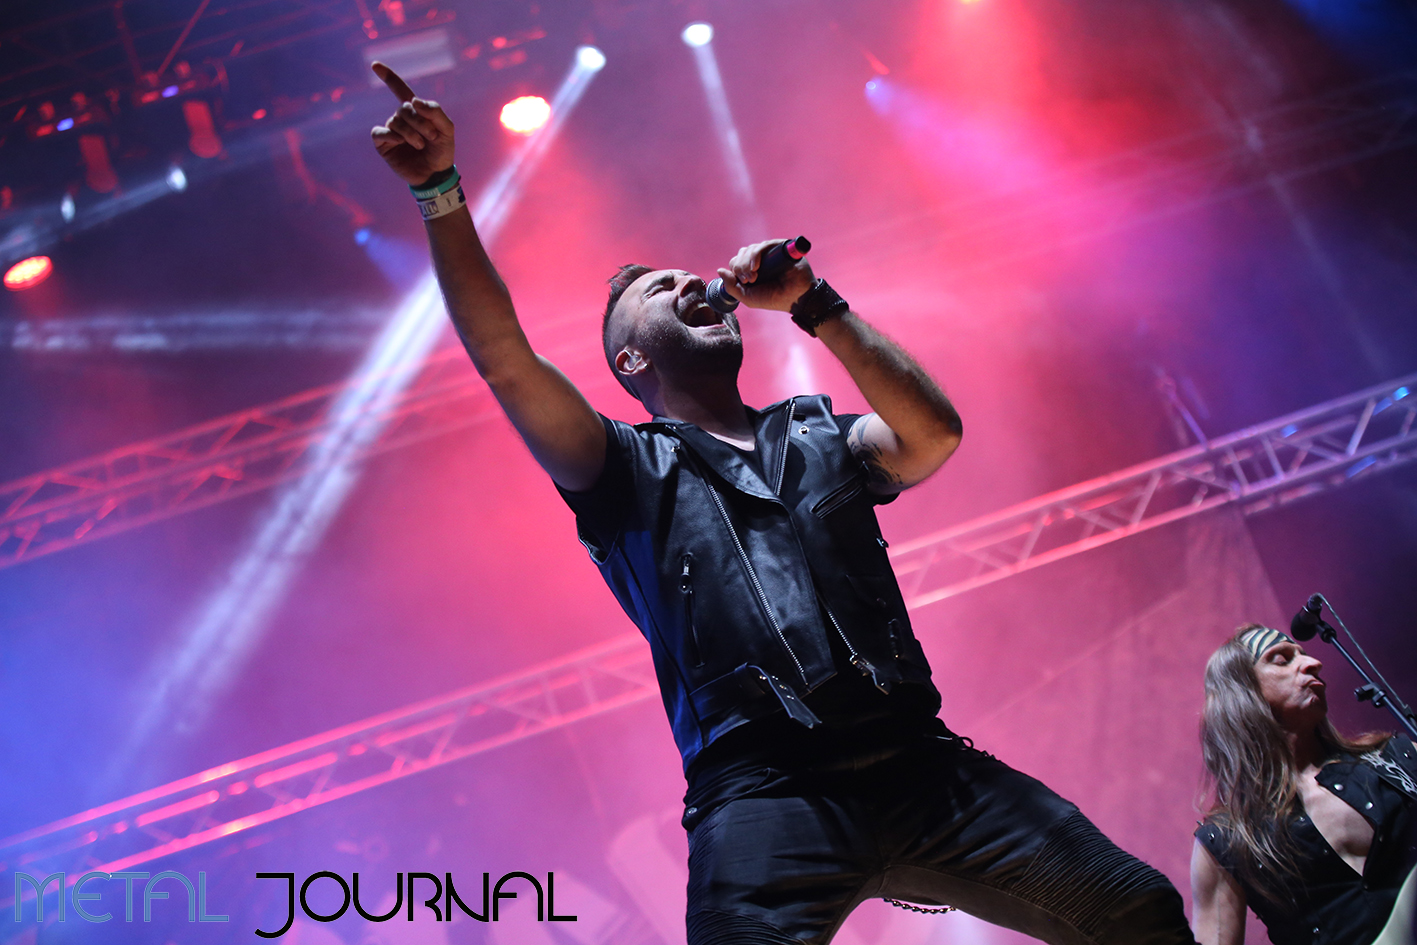 avalanch - leyendas del rock 2019 metal journal pic 1